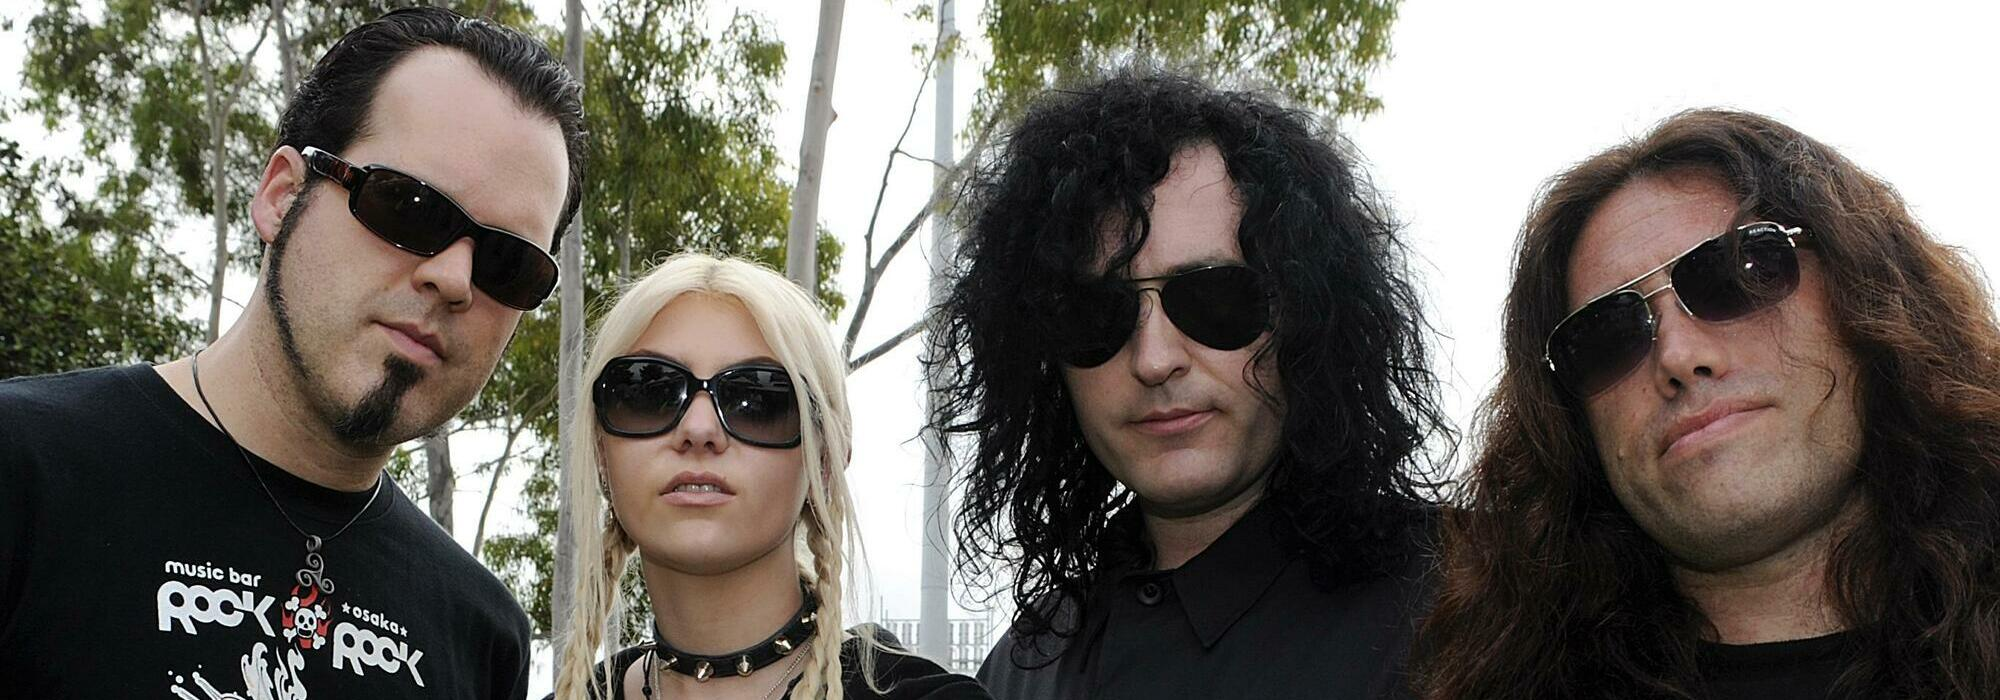 A The Pretty Reckless live event